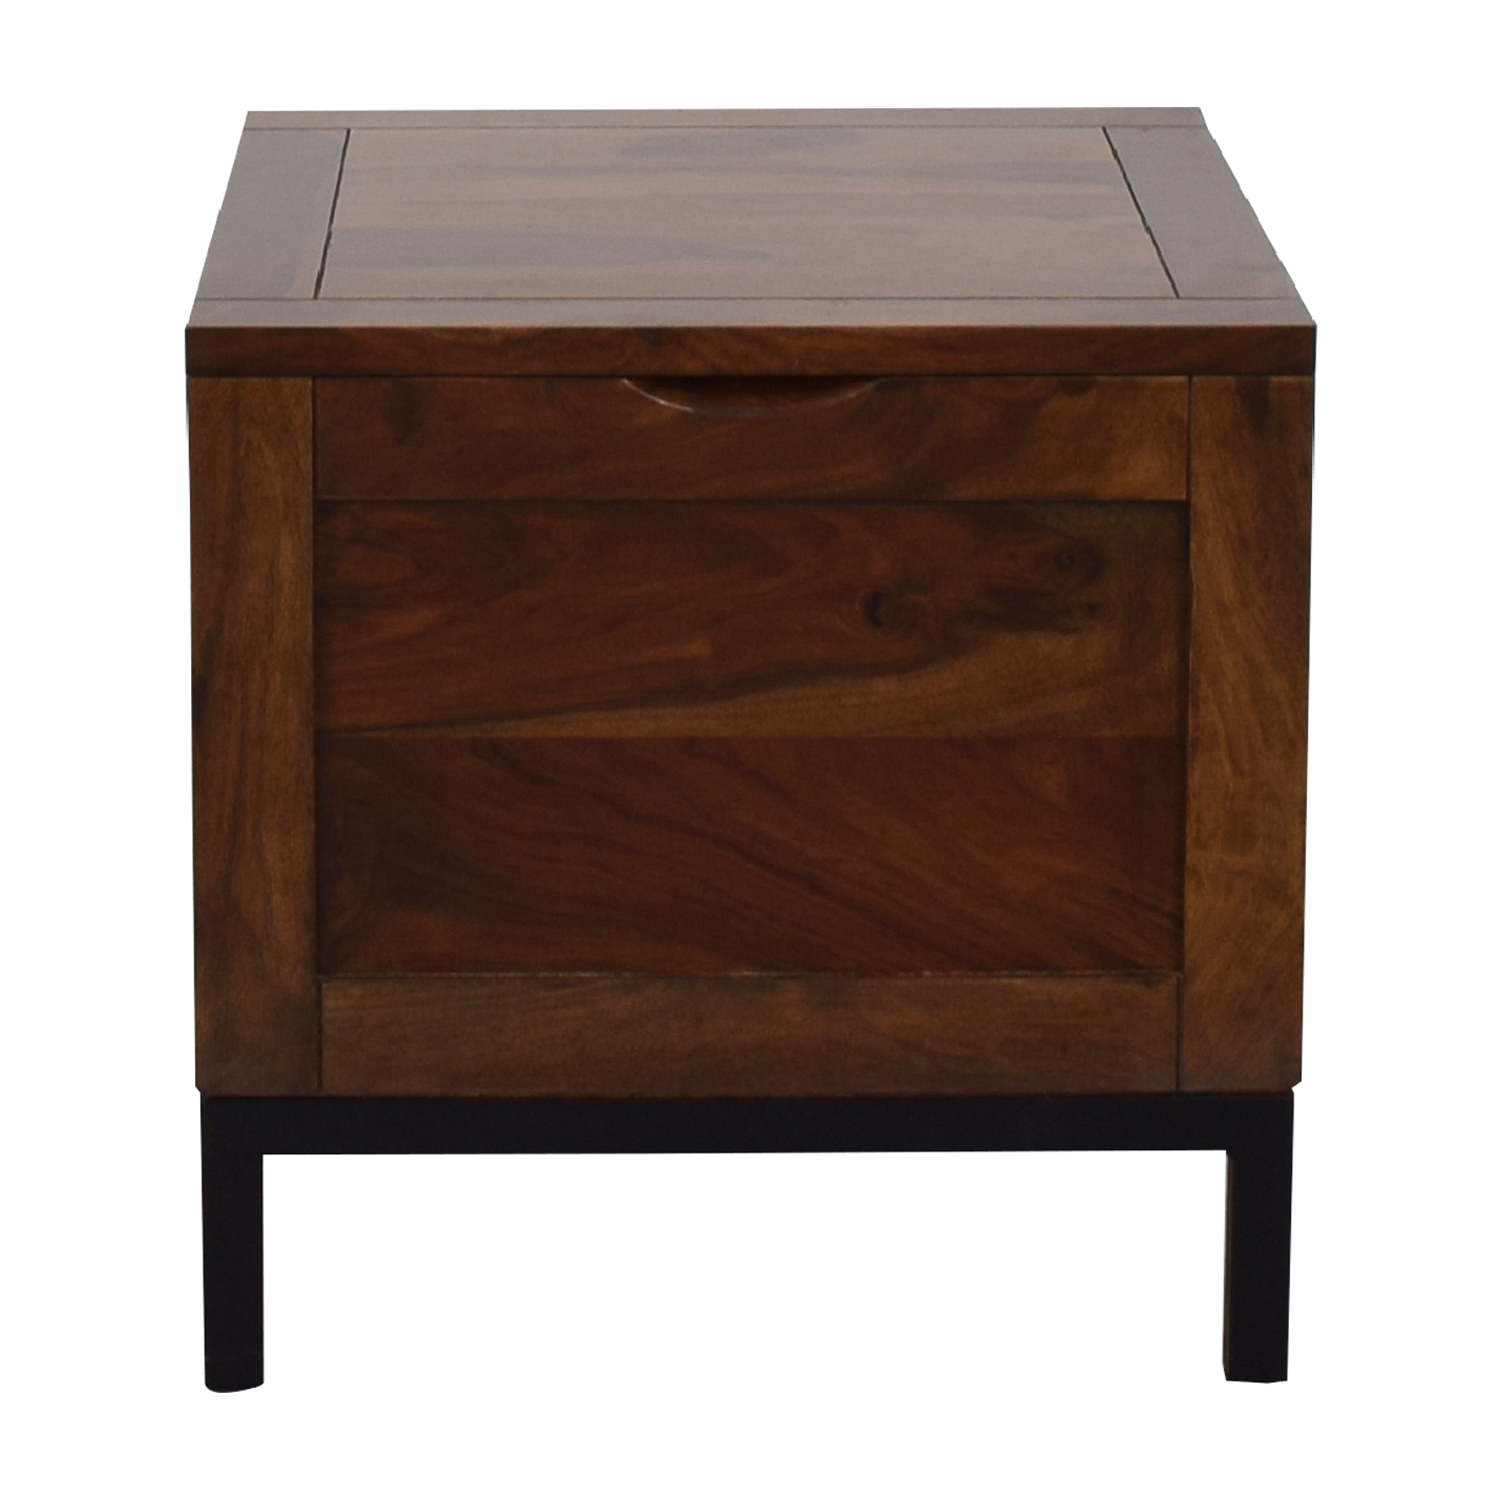 Crate & Barrel Crate & Barrel Tucker Side Trunk Table discount